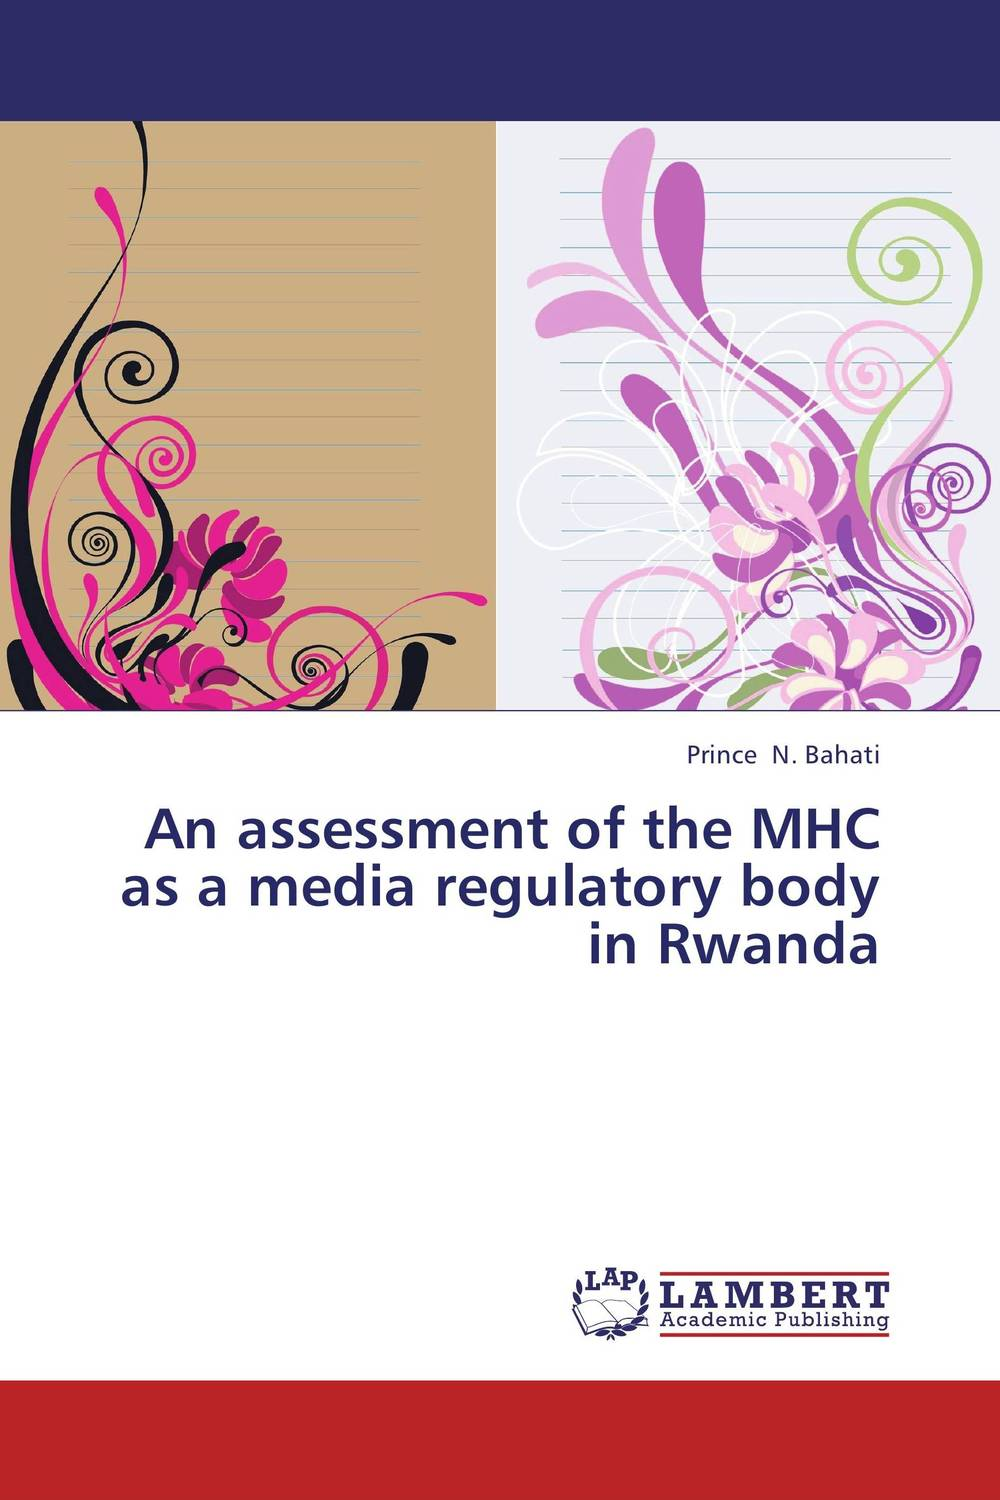 An assessment of the MHC as a media regulatory body in Rwanda the role of evaluation as a mechanism for advancing principal practice